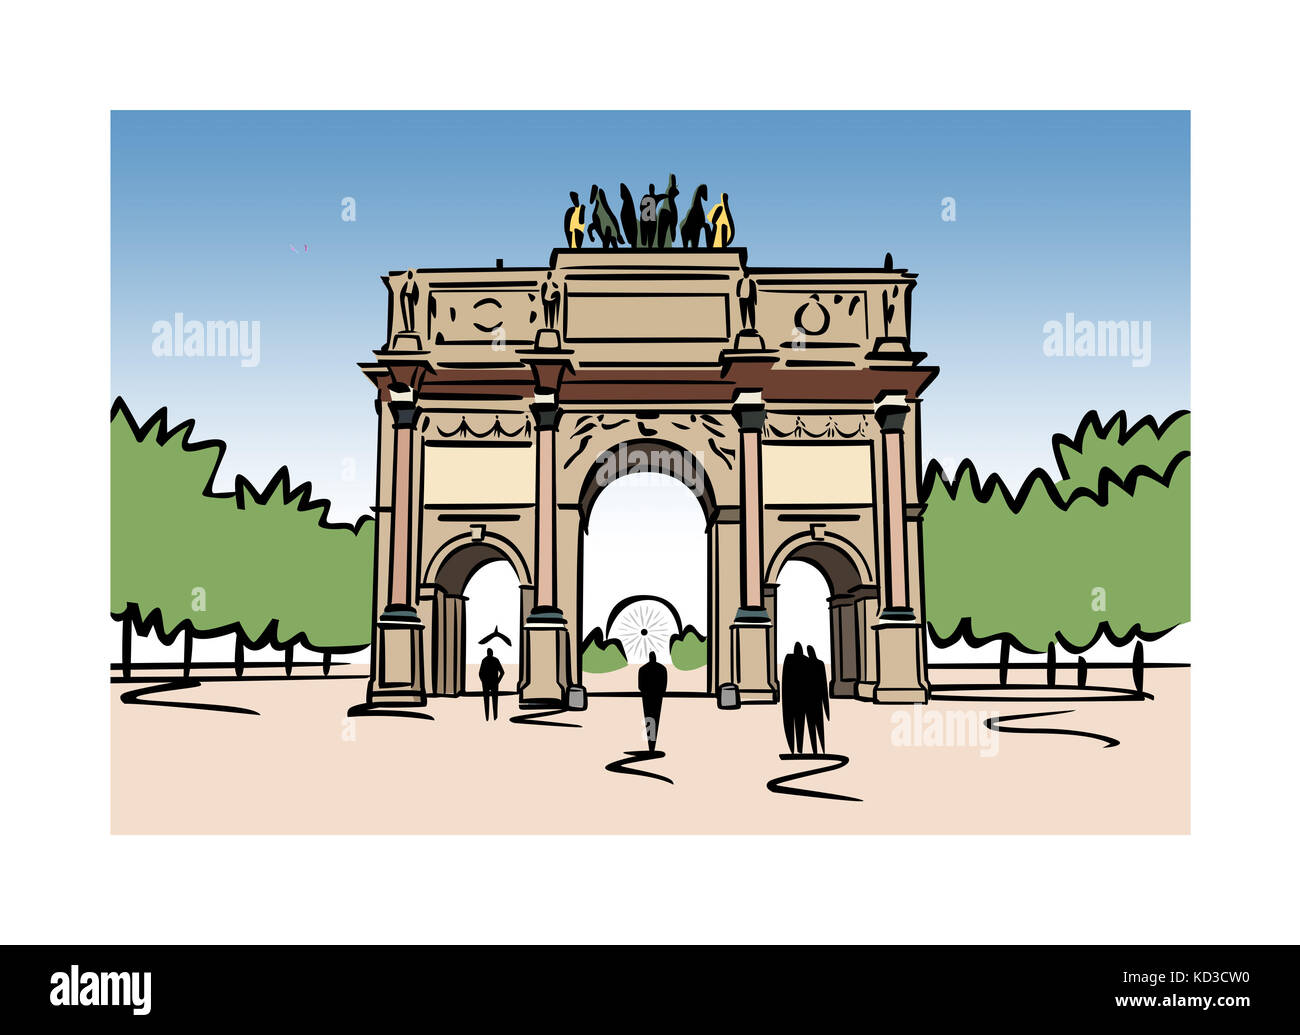 Illustration of the Arc de Carrousel in Paris, France - Stock Image